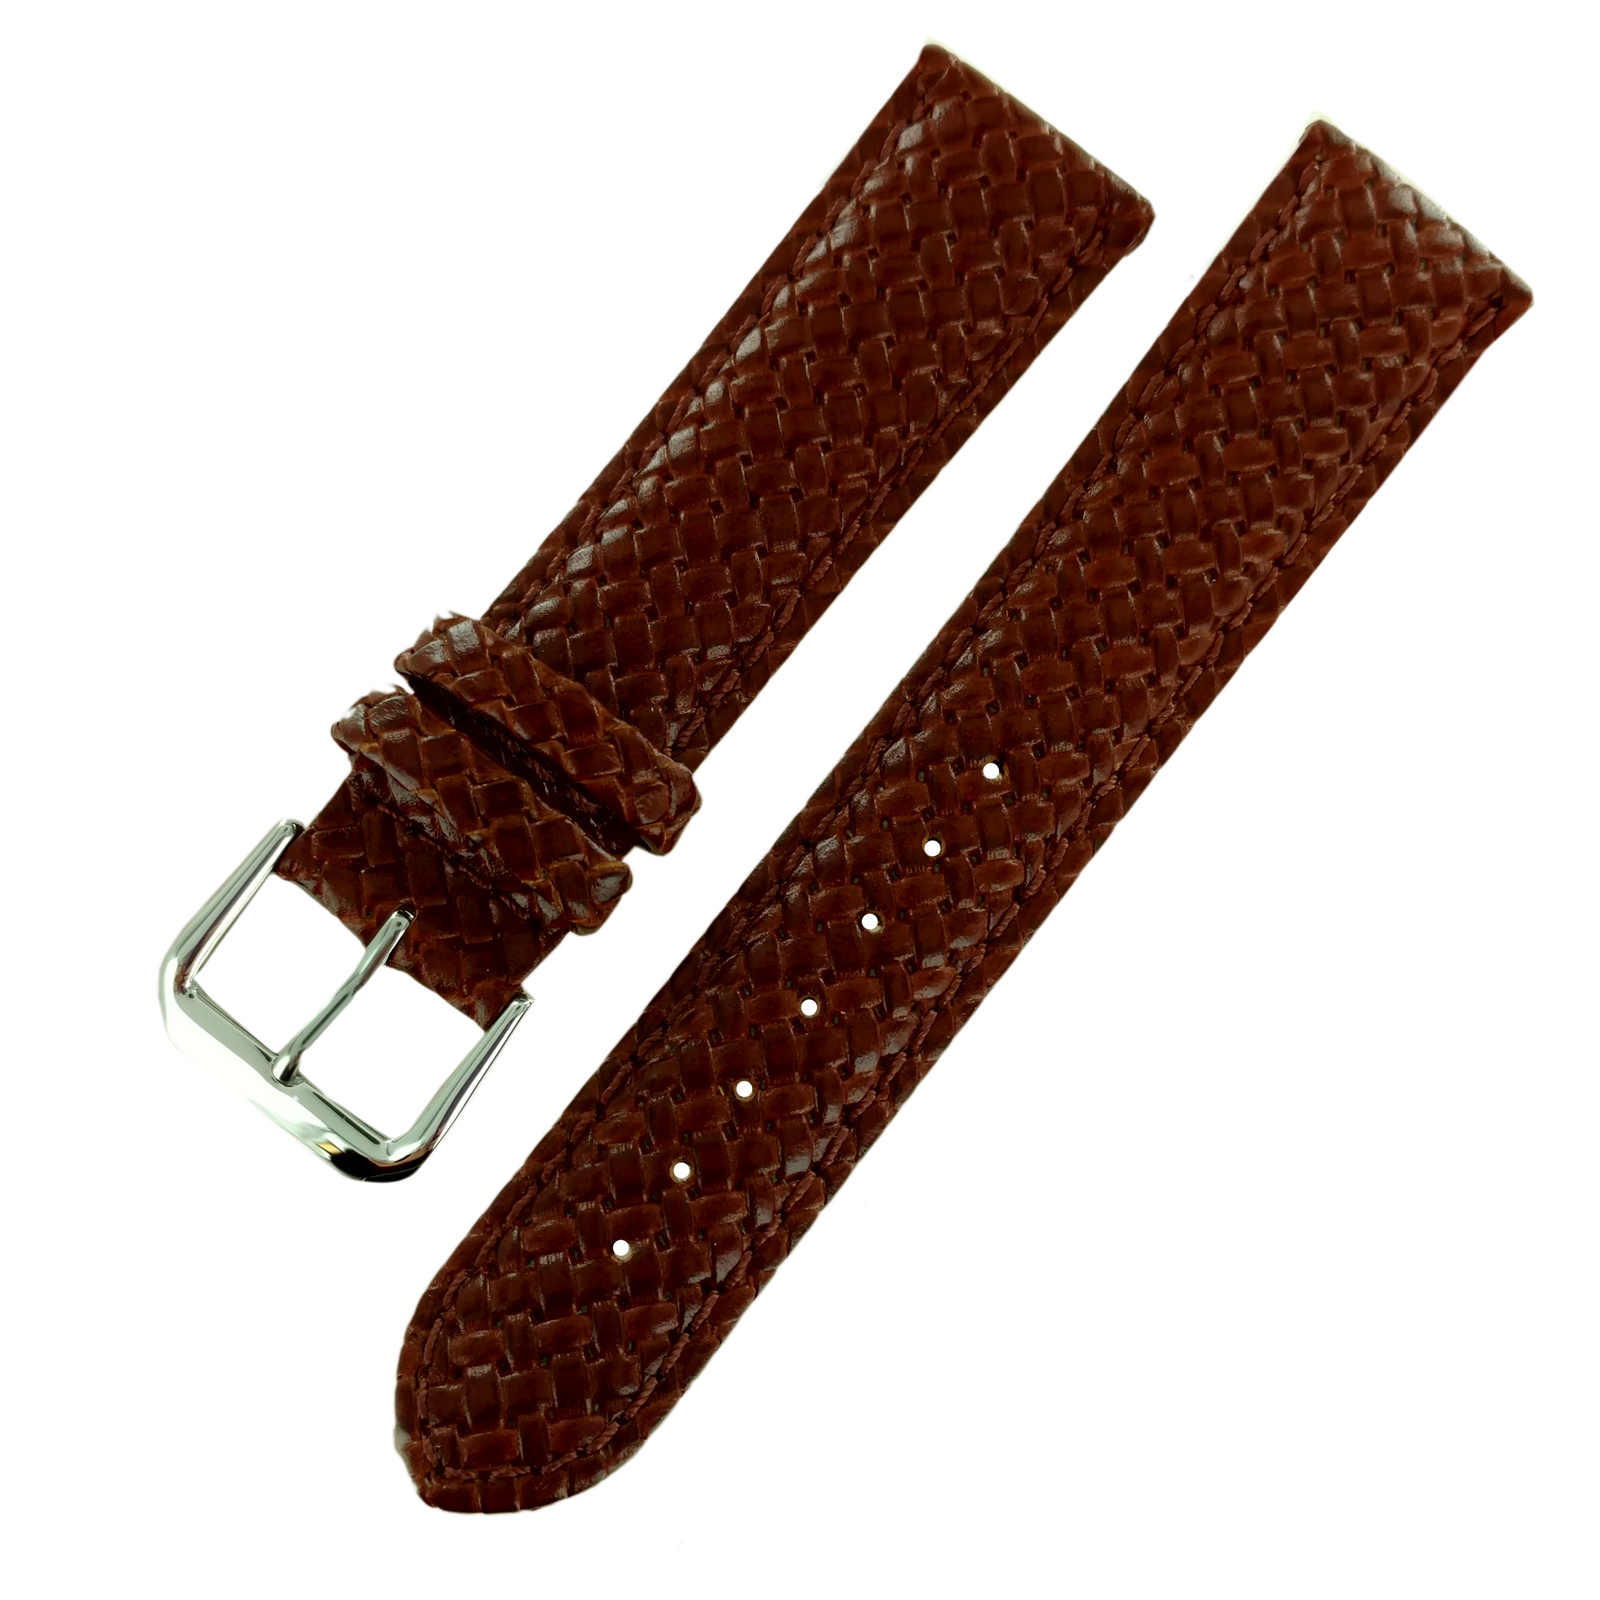 Hadley-Roma MS843 18mm Tan Woven Braided Stitched Genuine Leather Watch Strap